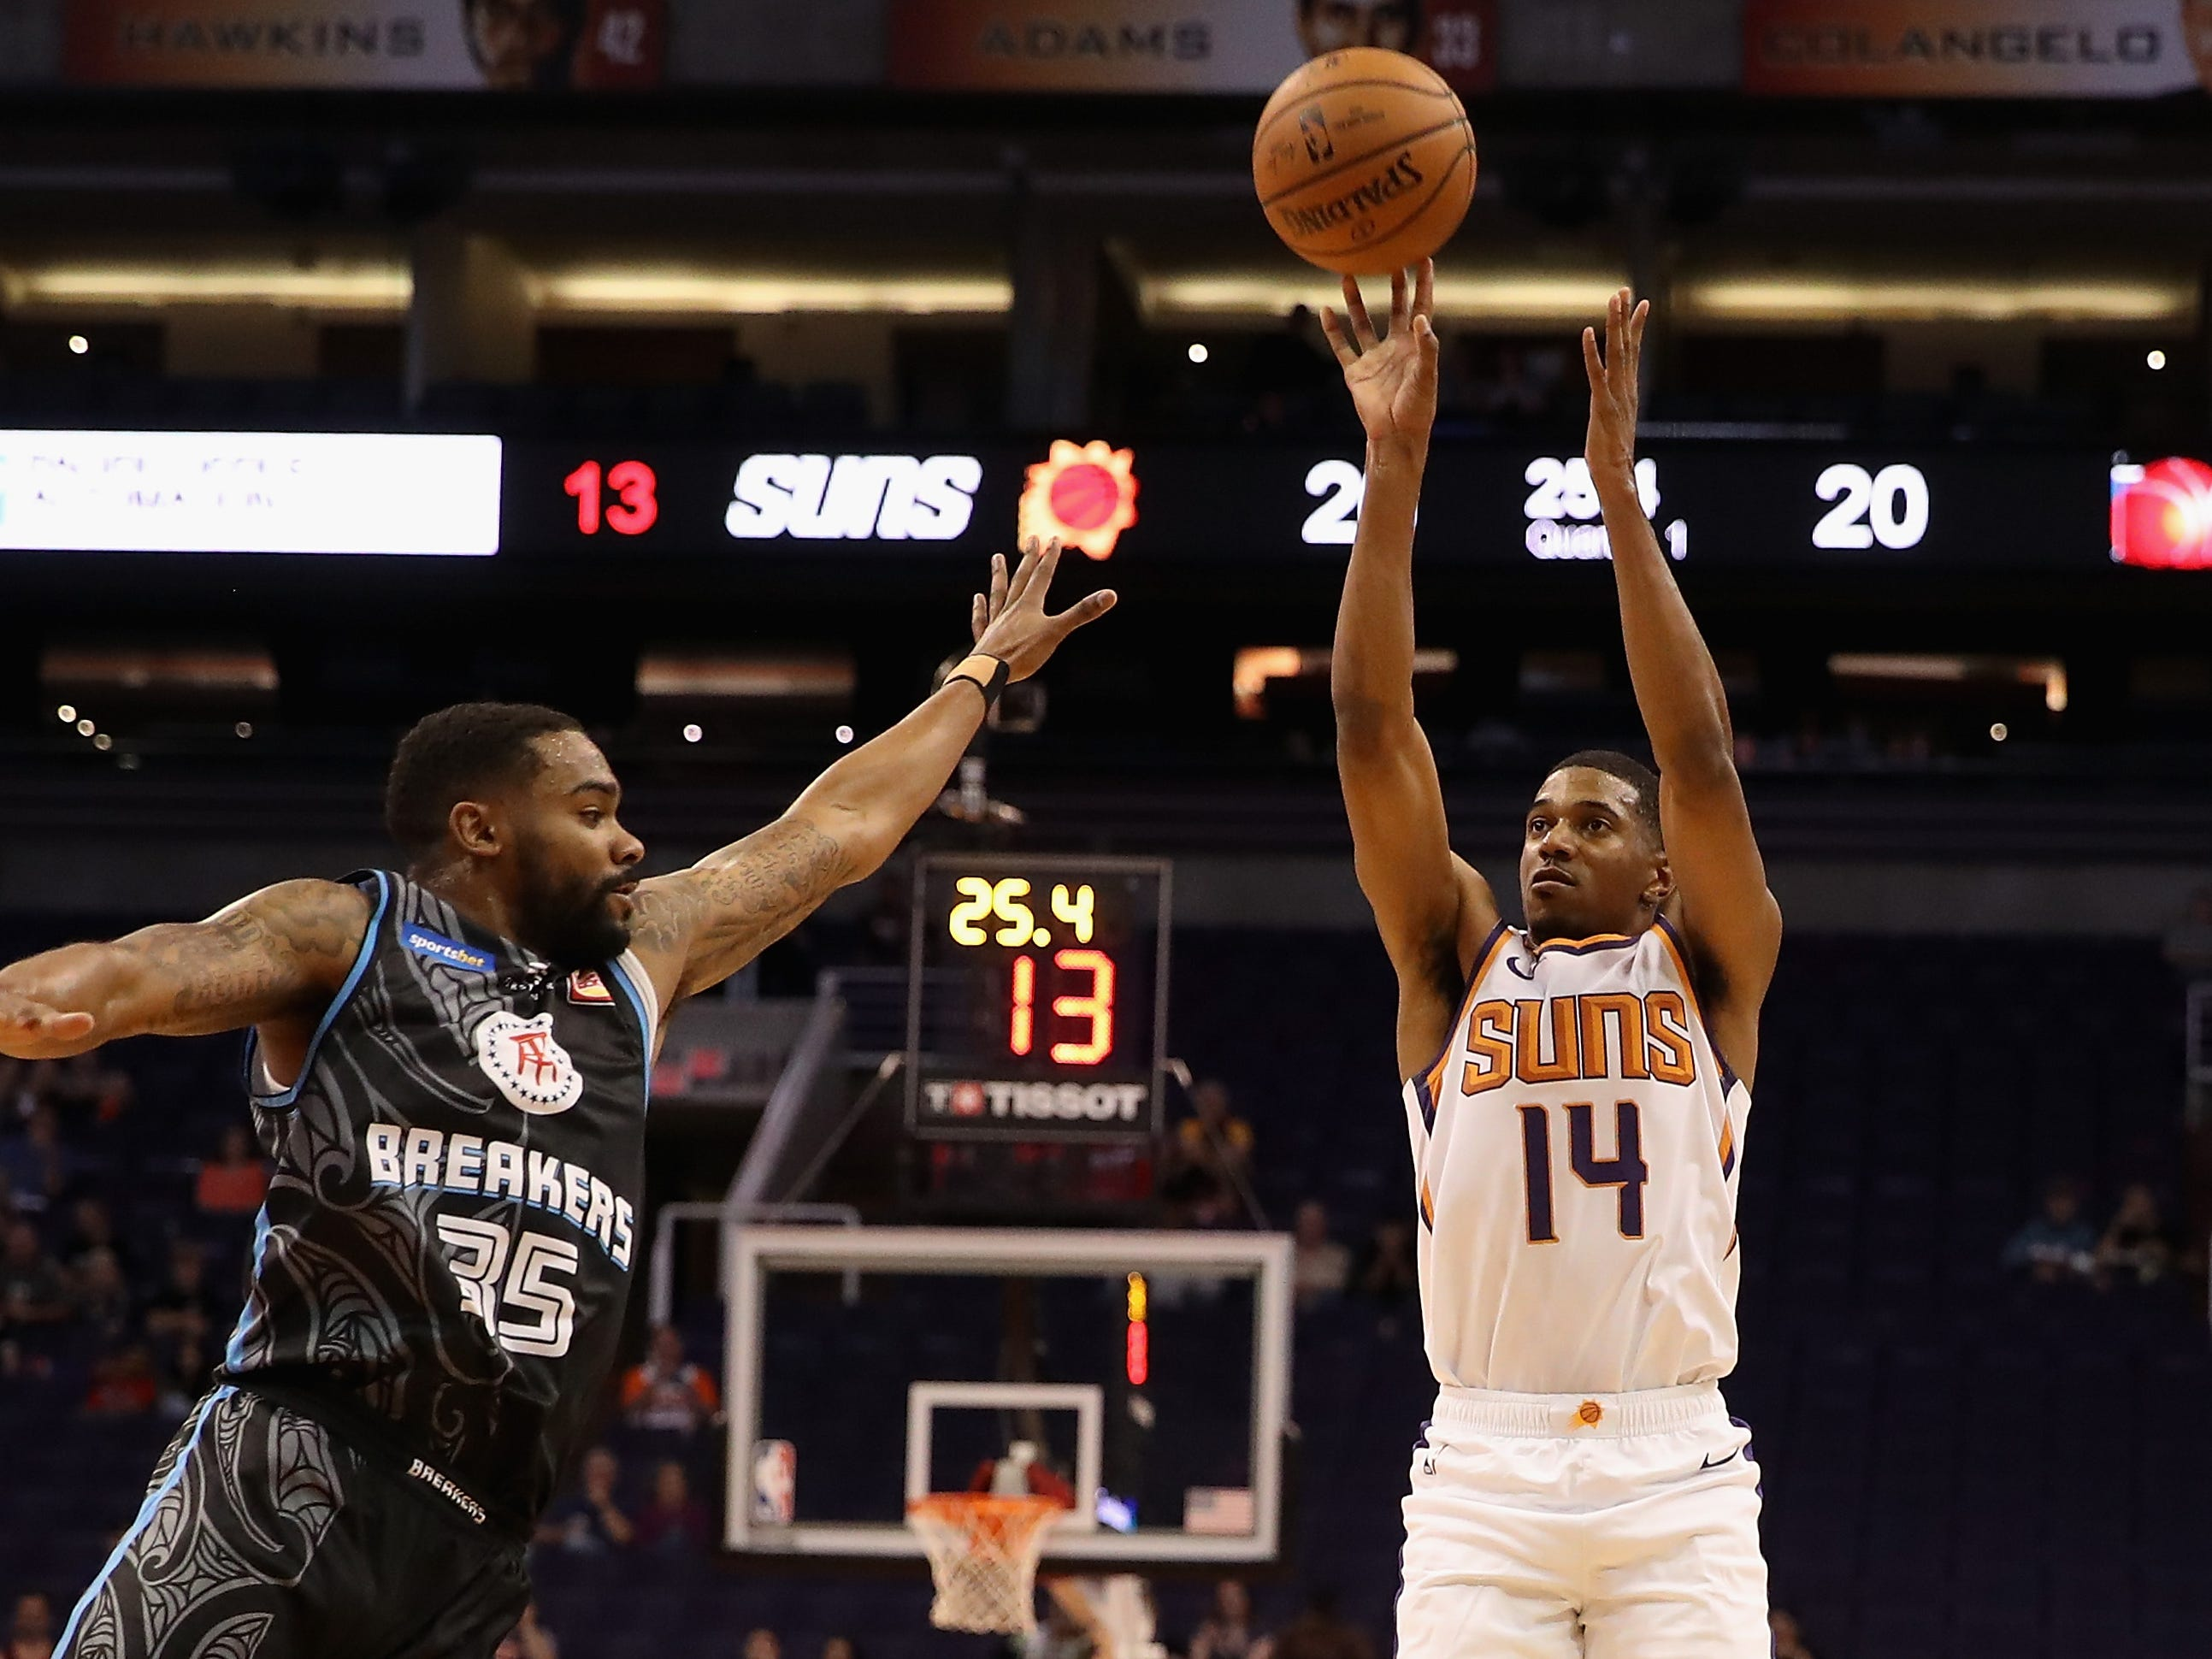 PHOENIX, AZ - OCTOBER 03:  De'Anthony Melton #14 of the Phoenix Suns attempts a shot over Patrick Richard #35 of the New Zealand Breakers during the first half of the NBA game at Talking Stick Resort Arena on October 3, 2018 in Phoenix, Arizona.  NOTE TO USER: User expressly acknowledges and agrees that, by downloading and or using this photograph, User is consenting to the terms and conditions of the Getty Images License Agreement.  (Photo by Christian Petersen/Getty Images)